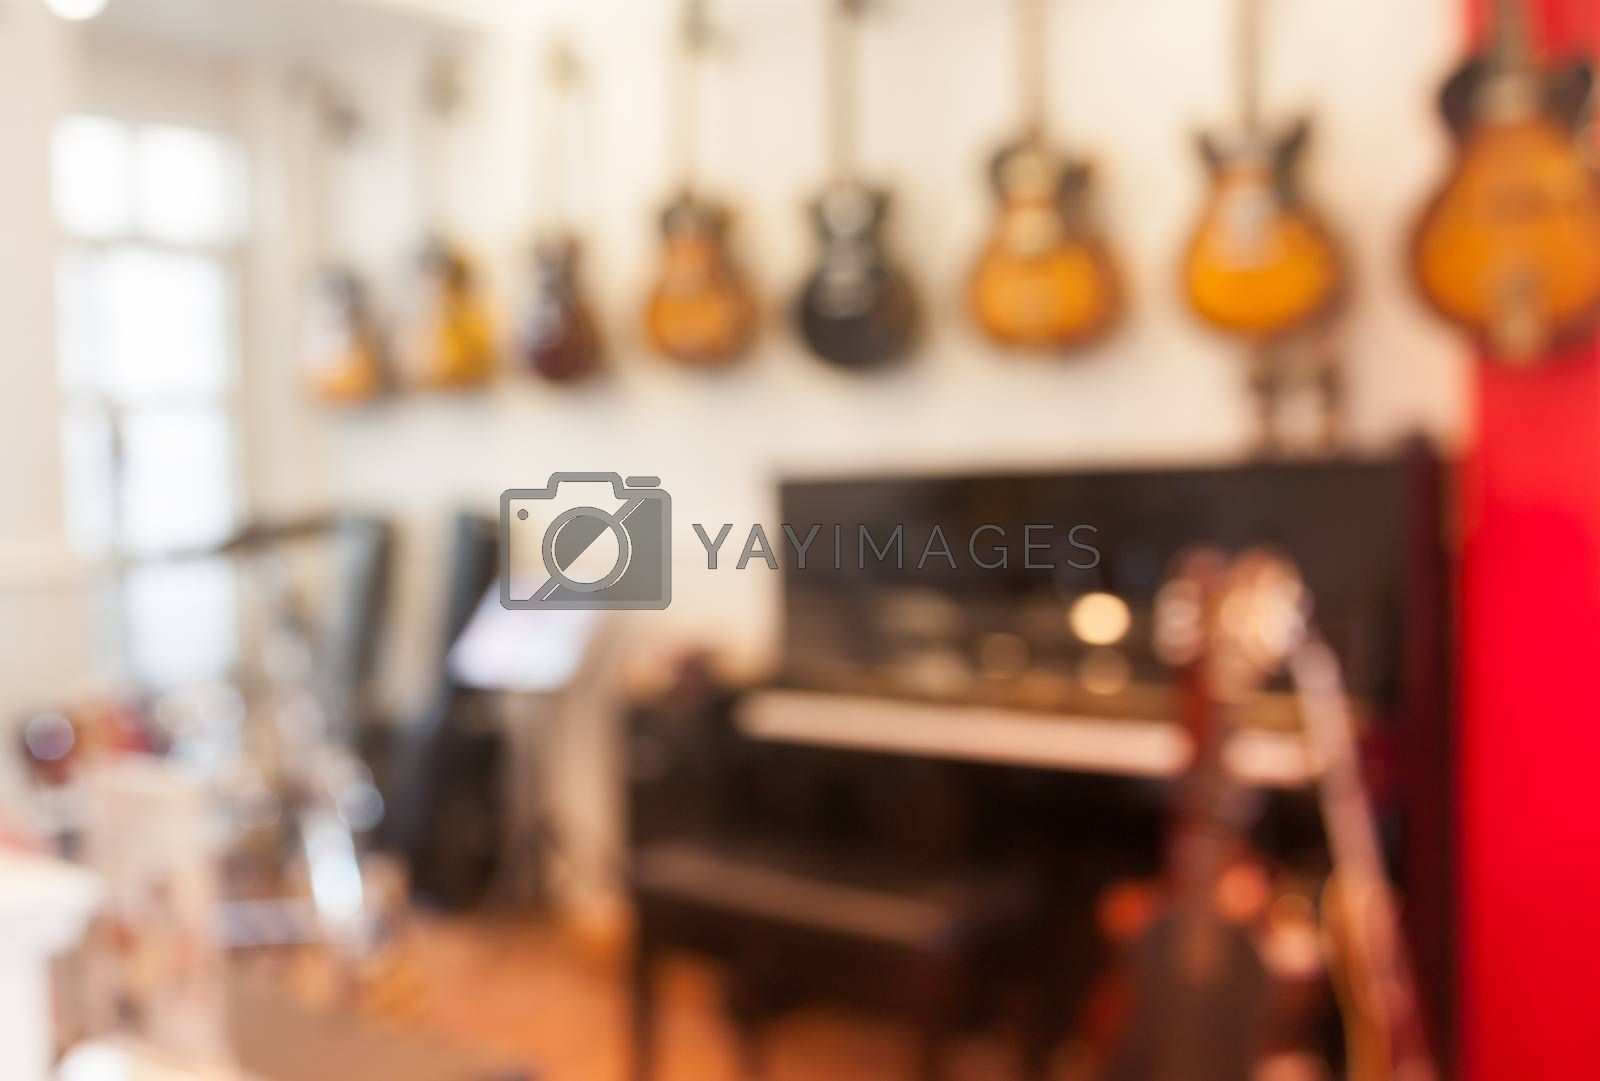 Blur abstract background with instrumentsin music store by punsayaporn